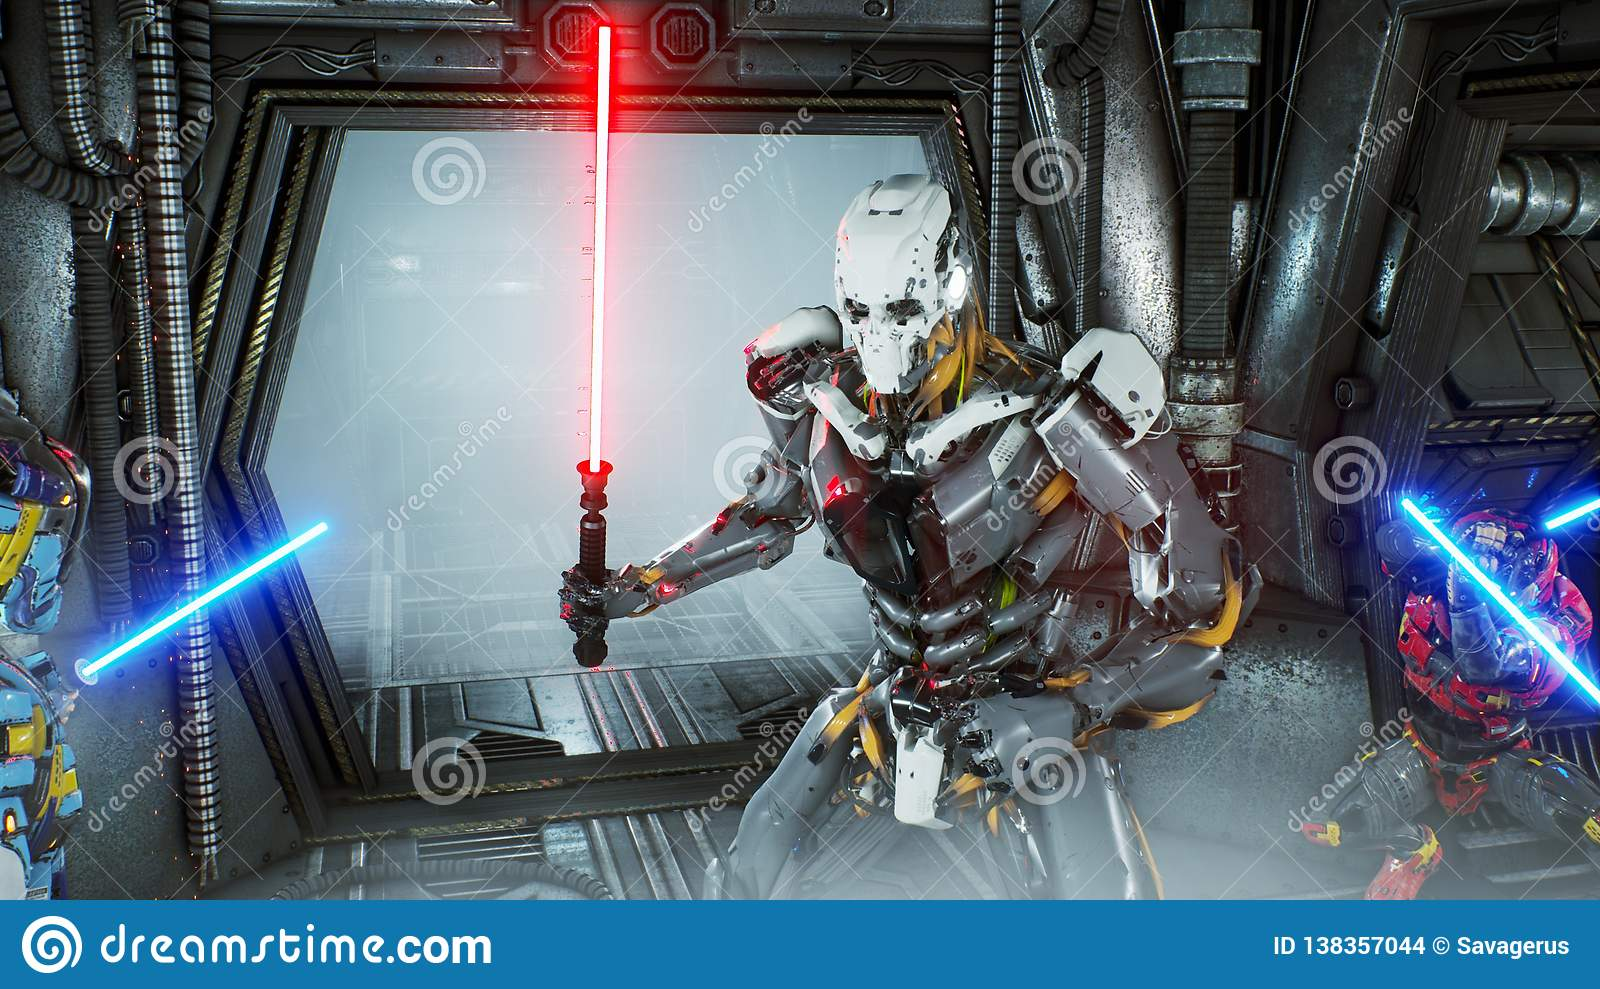 Astronauts with laser swords hid in an ambush on an alien robot invader on his spaceship. Super realistic sci-fi concept